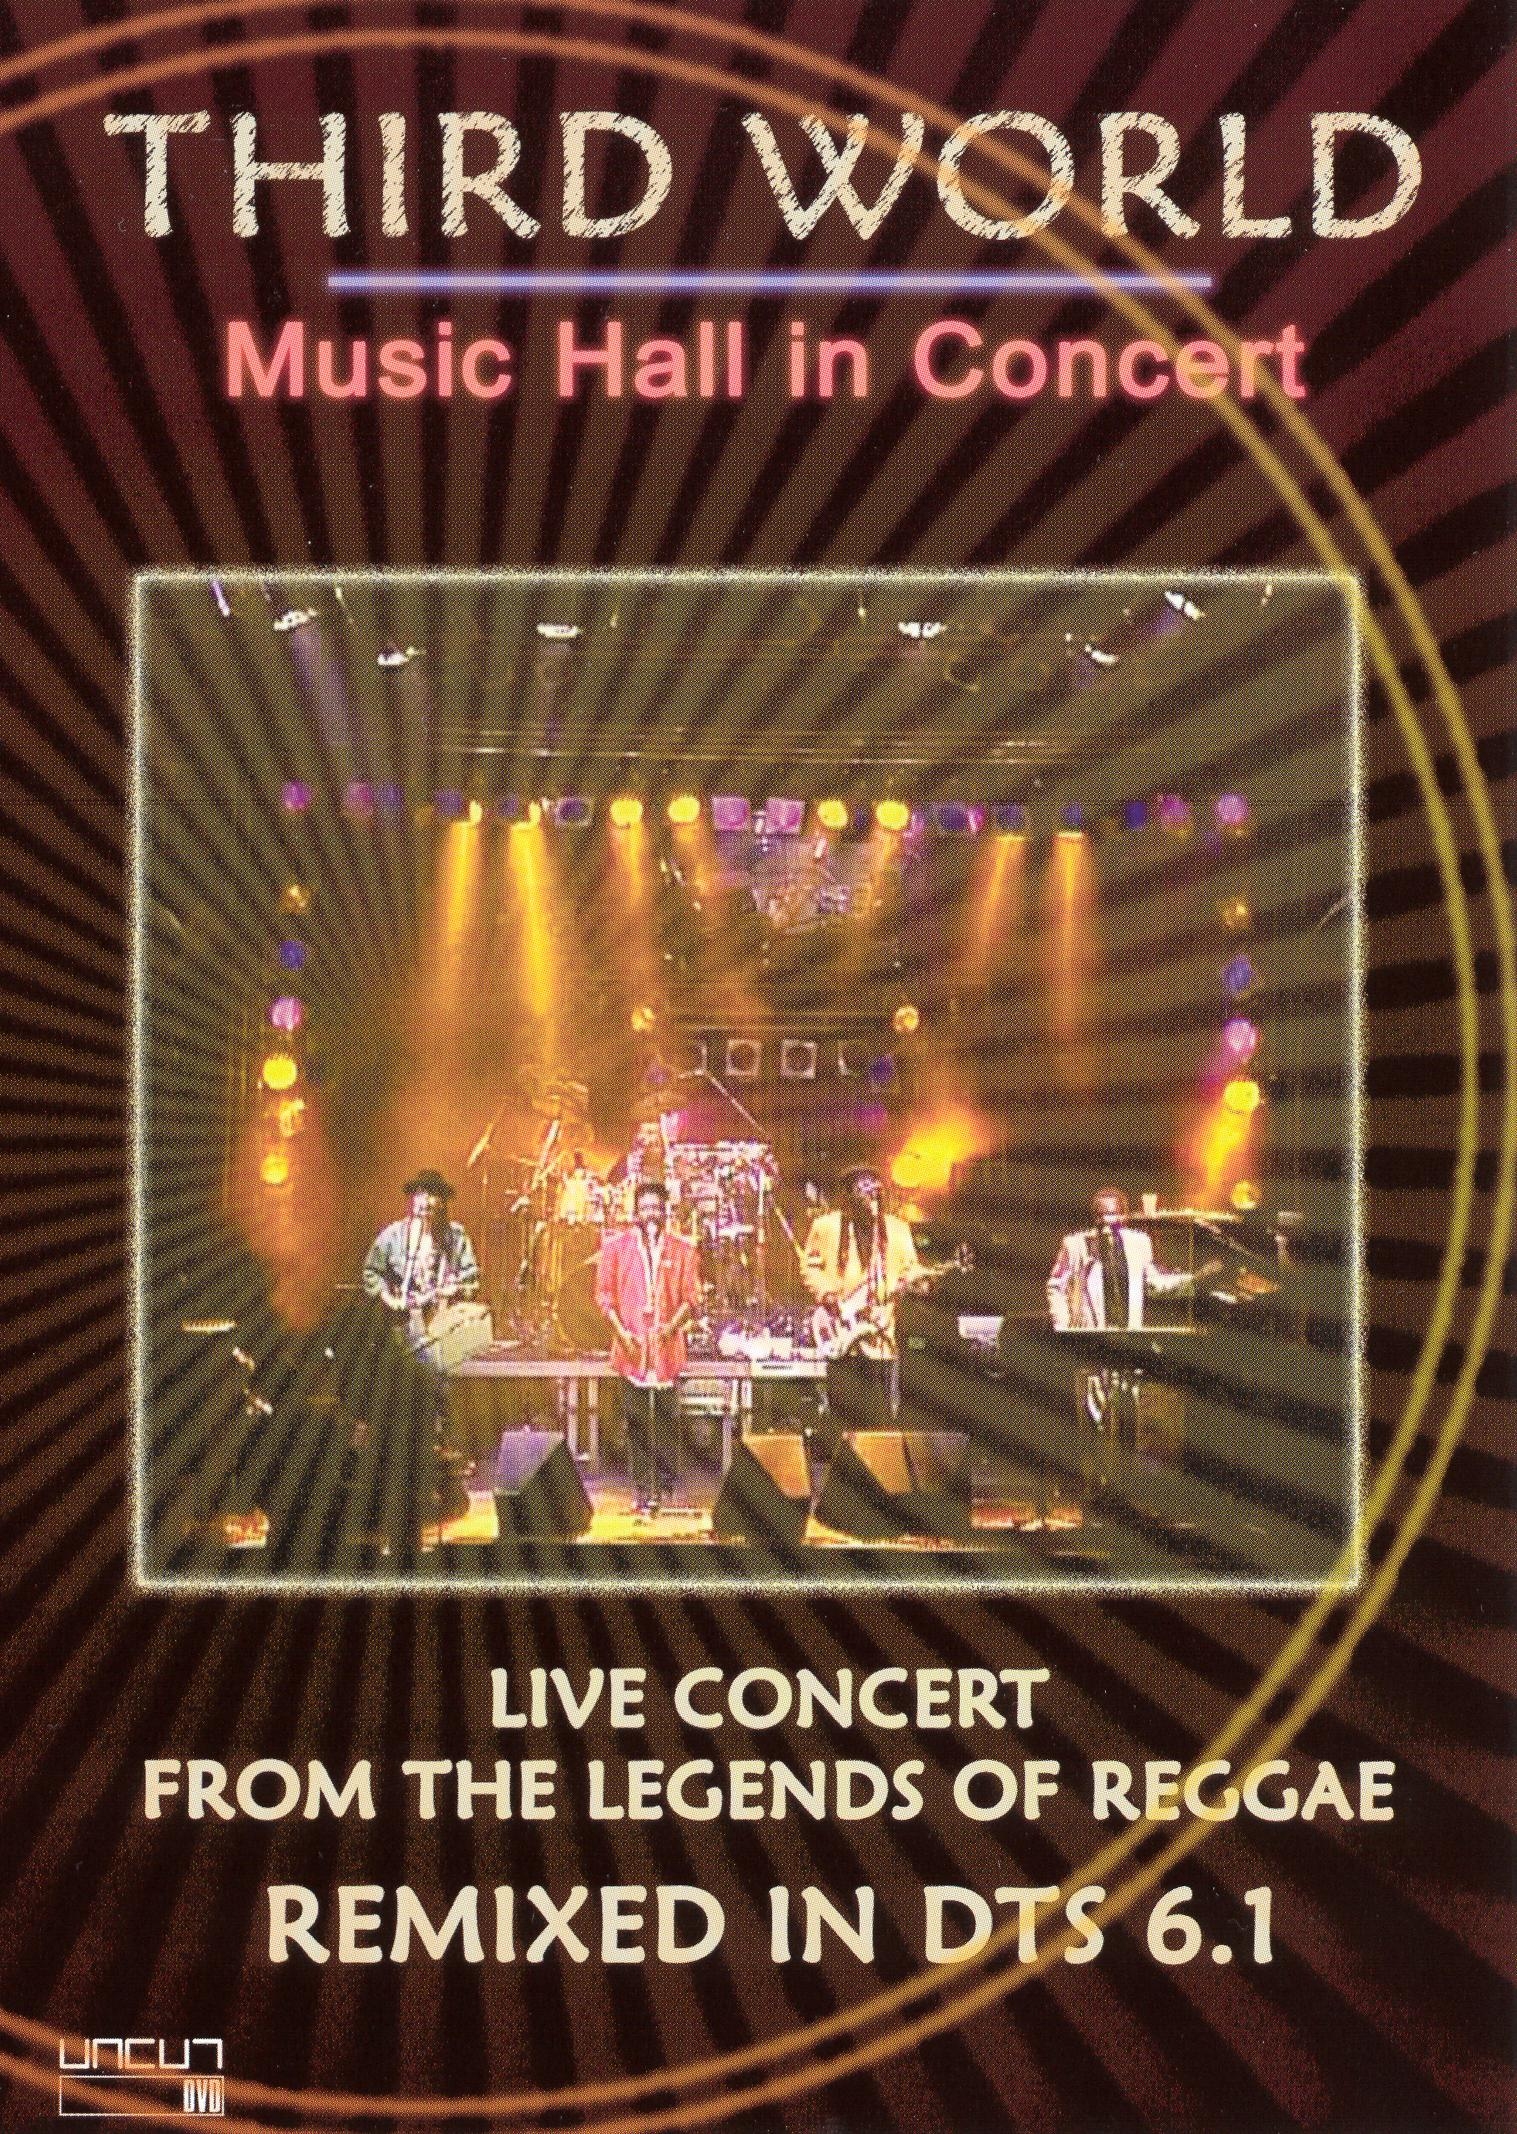 Third World: Music Hall in Concert